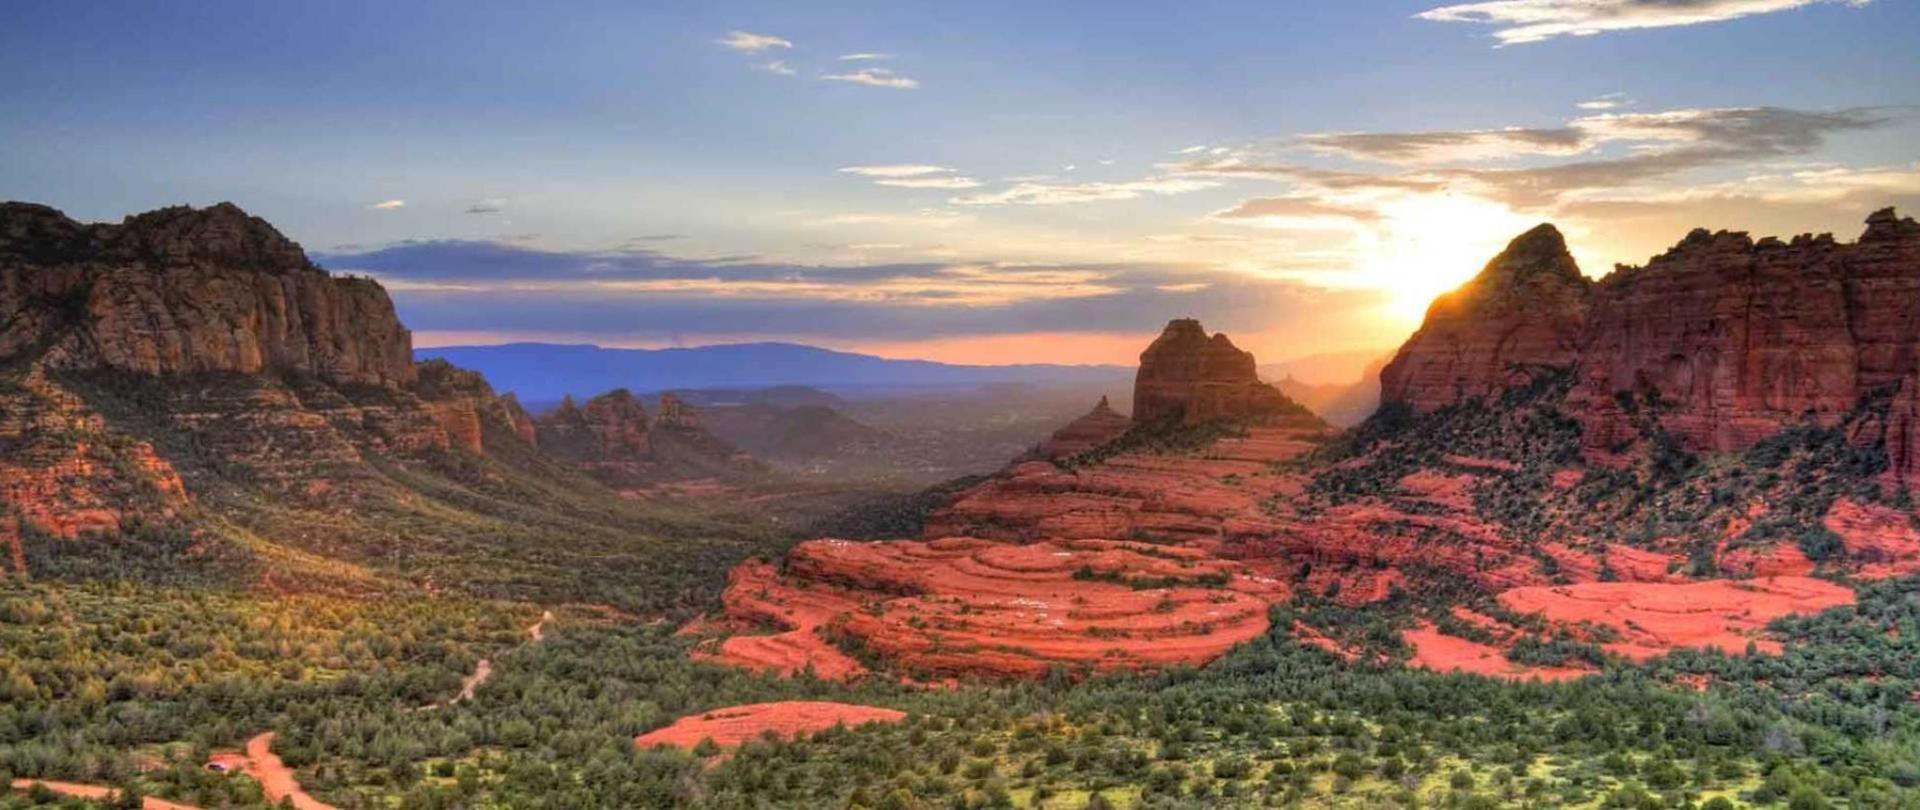 sedona-sunset.jpg.1920x807_default.jpg